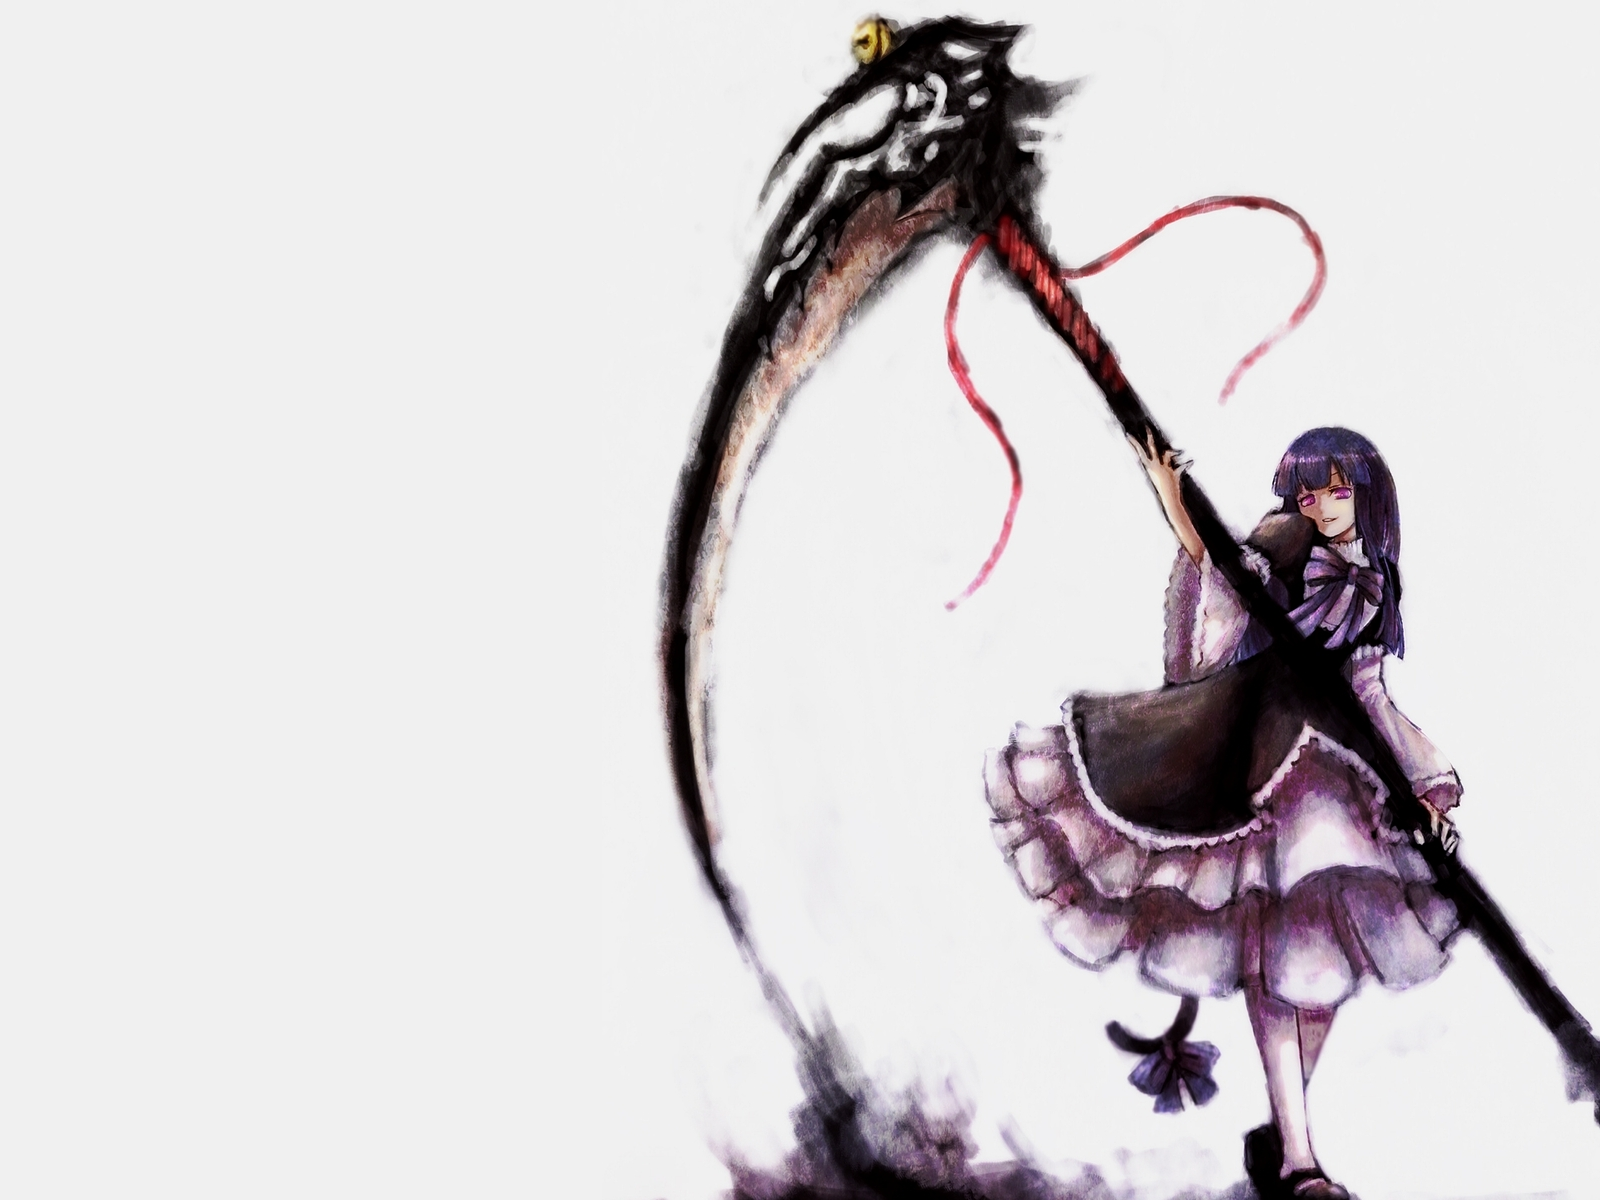 bernkastel scythe google search art pinterest